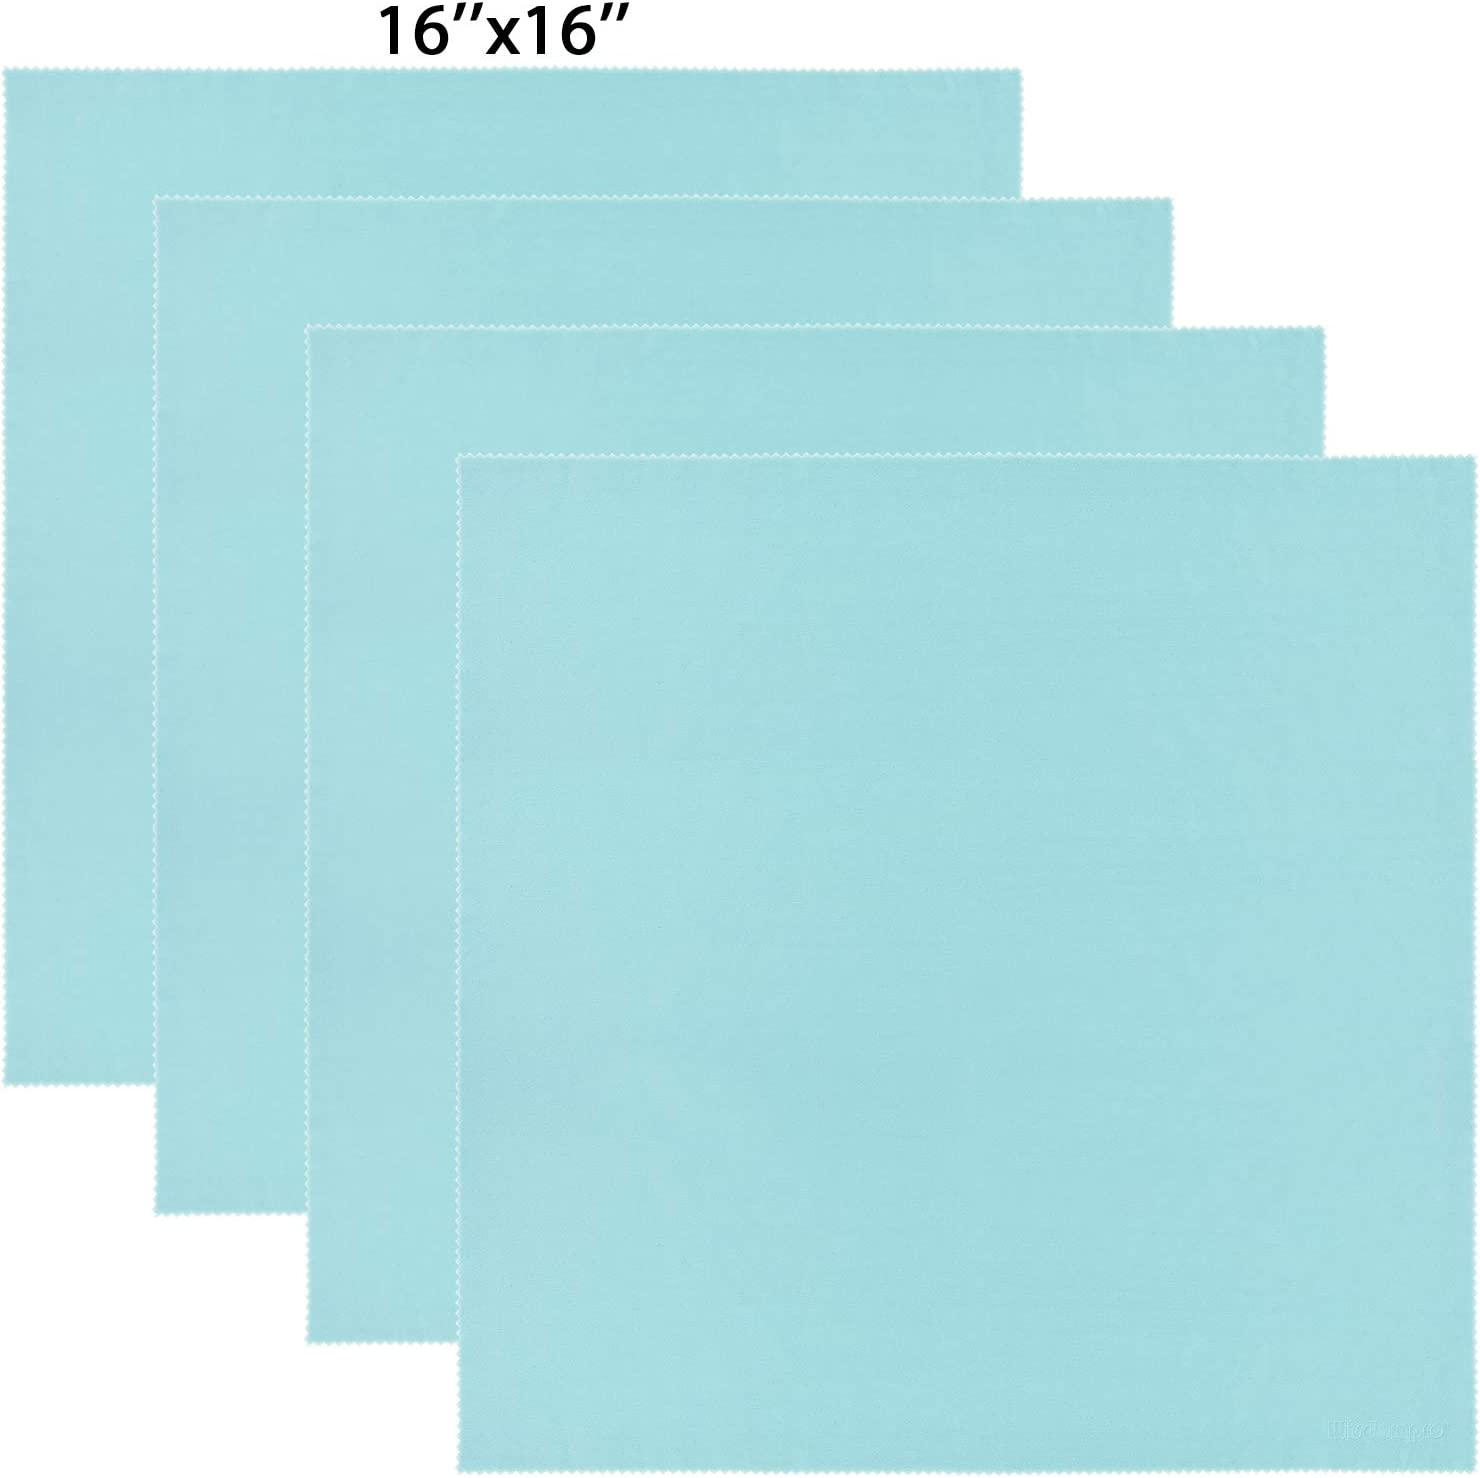 Wisdompro Extra Large 4-Pack Microfiber Cleaning Cloth For Laptop, LCD TV, Computer Screen, Monitor, Tablet, Camera Lens, Glass, Lenses, Phone, iPhone, iPad, other Delicate Surface - Mint (16x16 Inch)